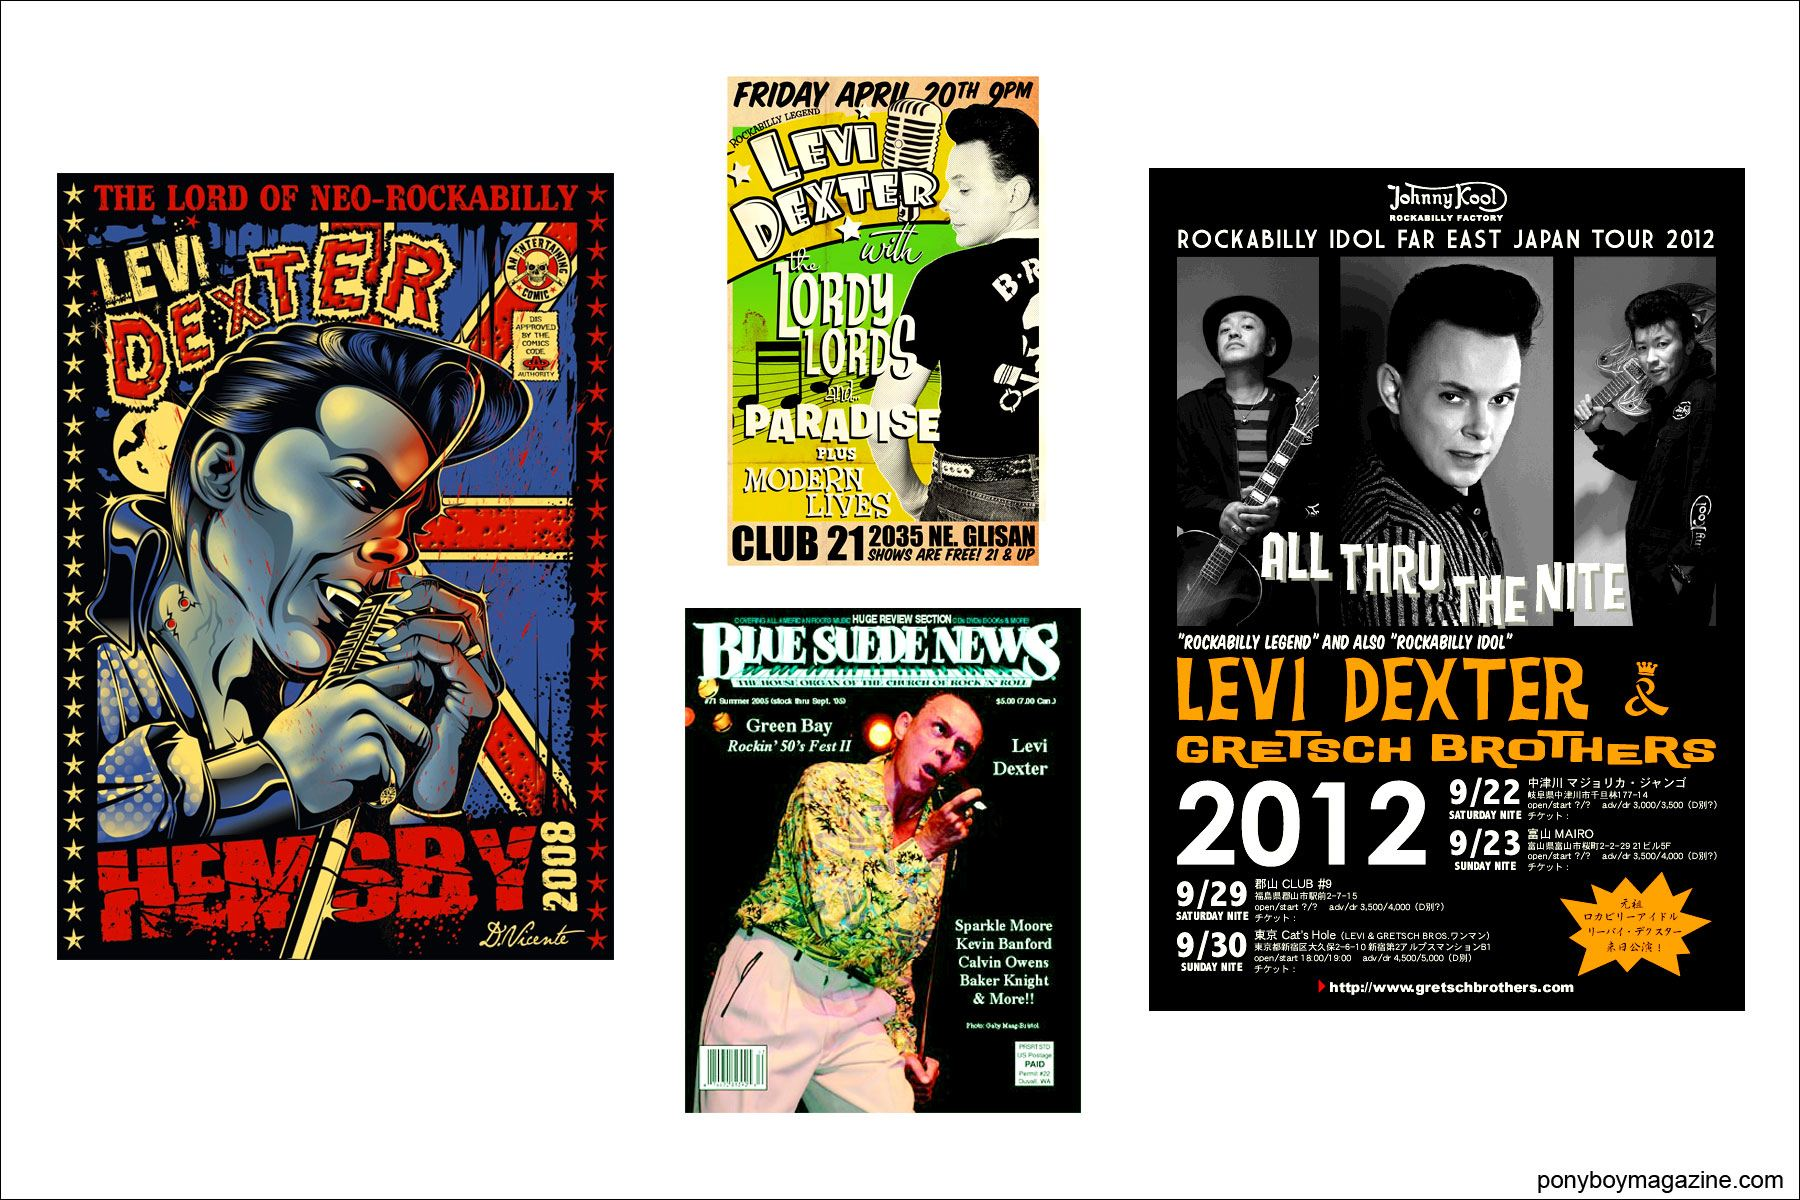 Various flyers for Rockabilly performer Levi Dexter, Ponyboy Magazine.